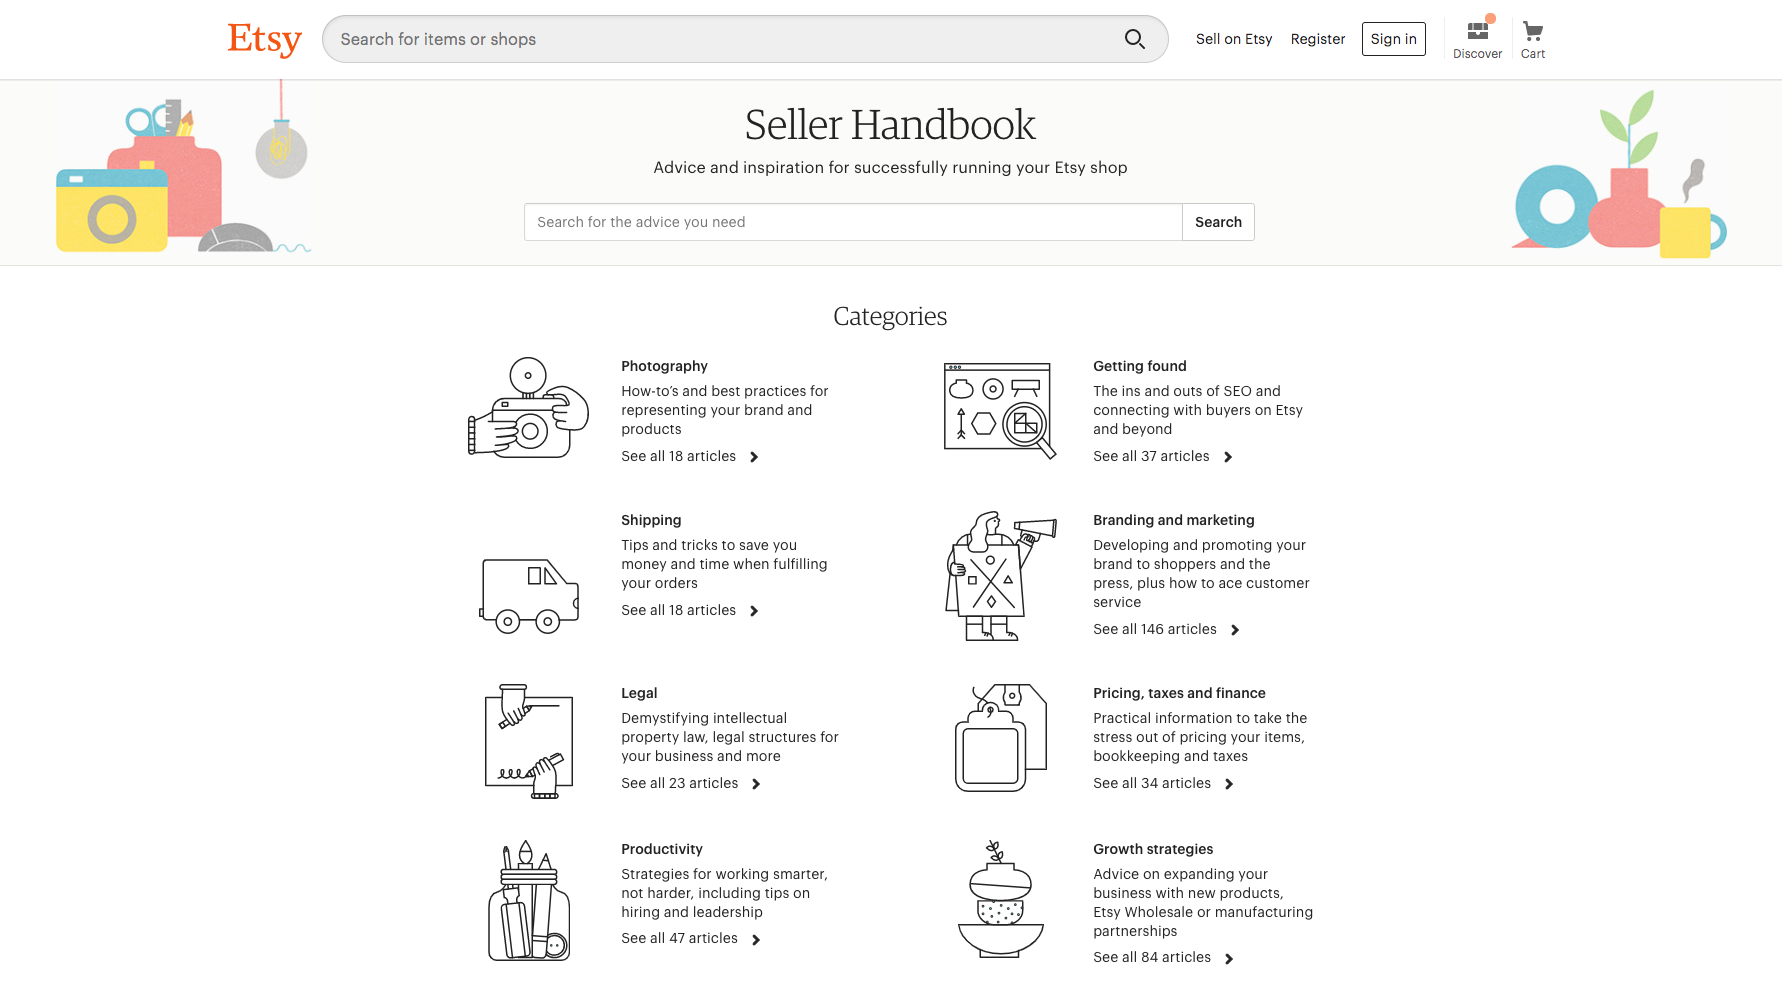 etsy seller handbook dashboard